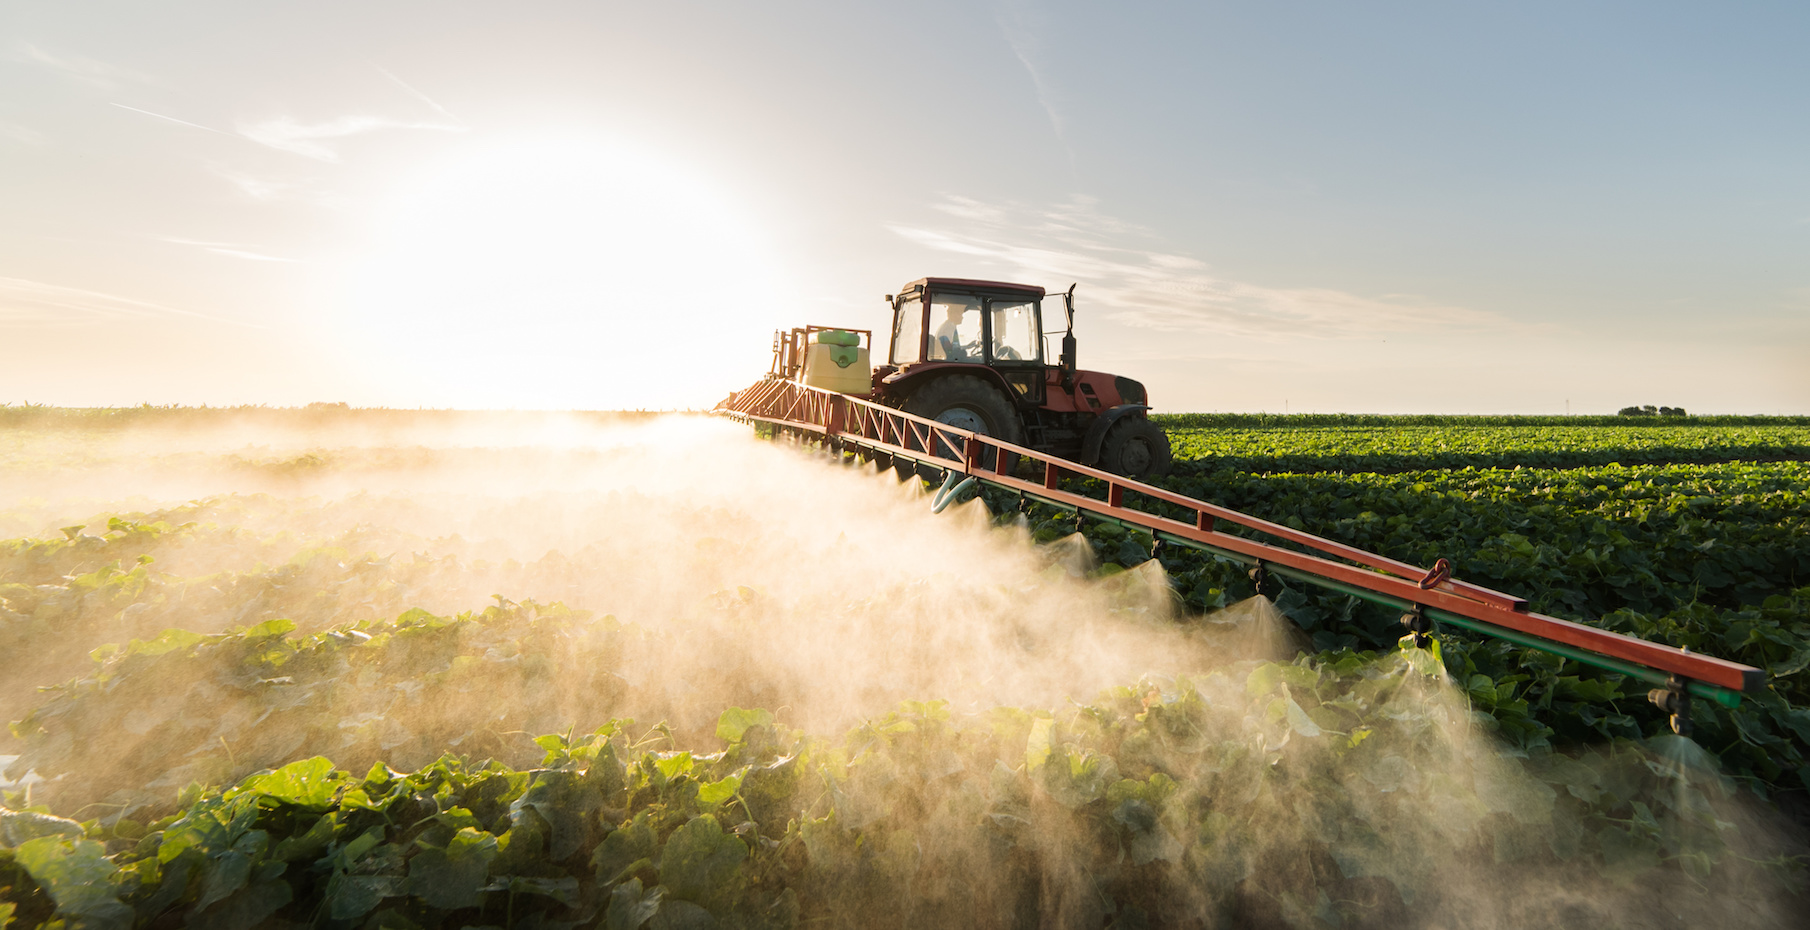 To prevent further injuries from this potentially devastating toxic herbicide, a coalition of groups filed a lawsuit in the U.S. Court of Appeals for the Ninth Circuit last week aiming to reject the EPA's recent decision to renew its approval for the use of paraquat.